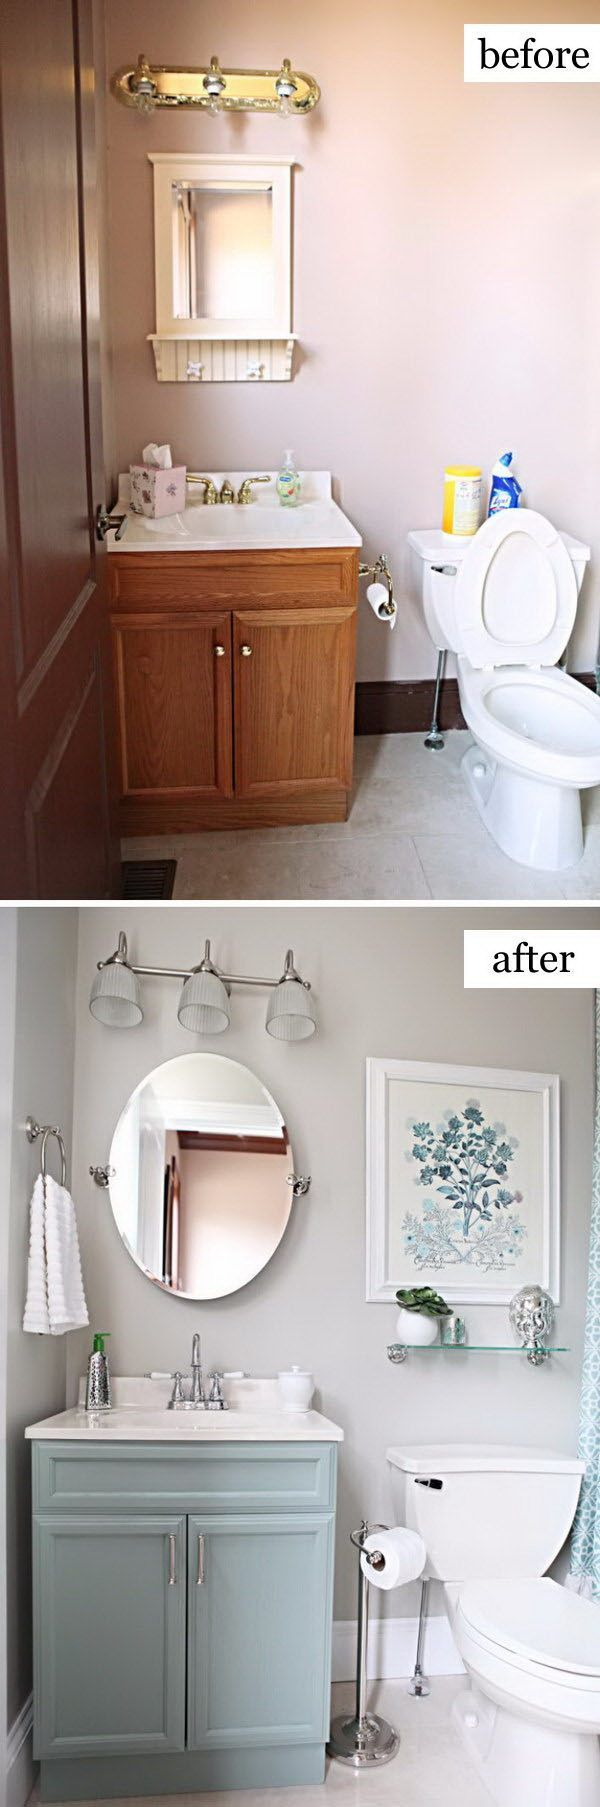 Bathroom Makeovers For Small Bathrooms best 25+ small bathroom makeovers ideas only on pinterest | small